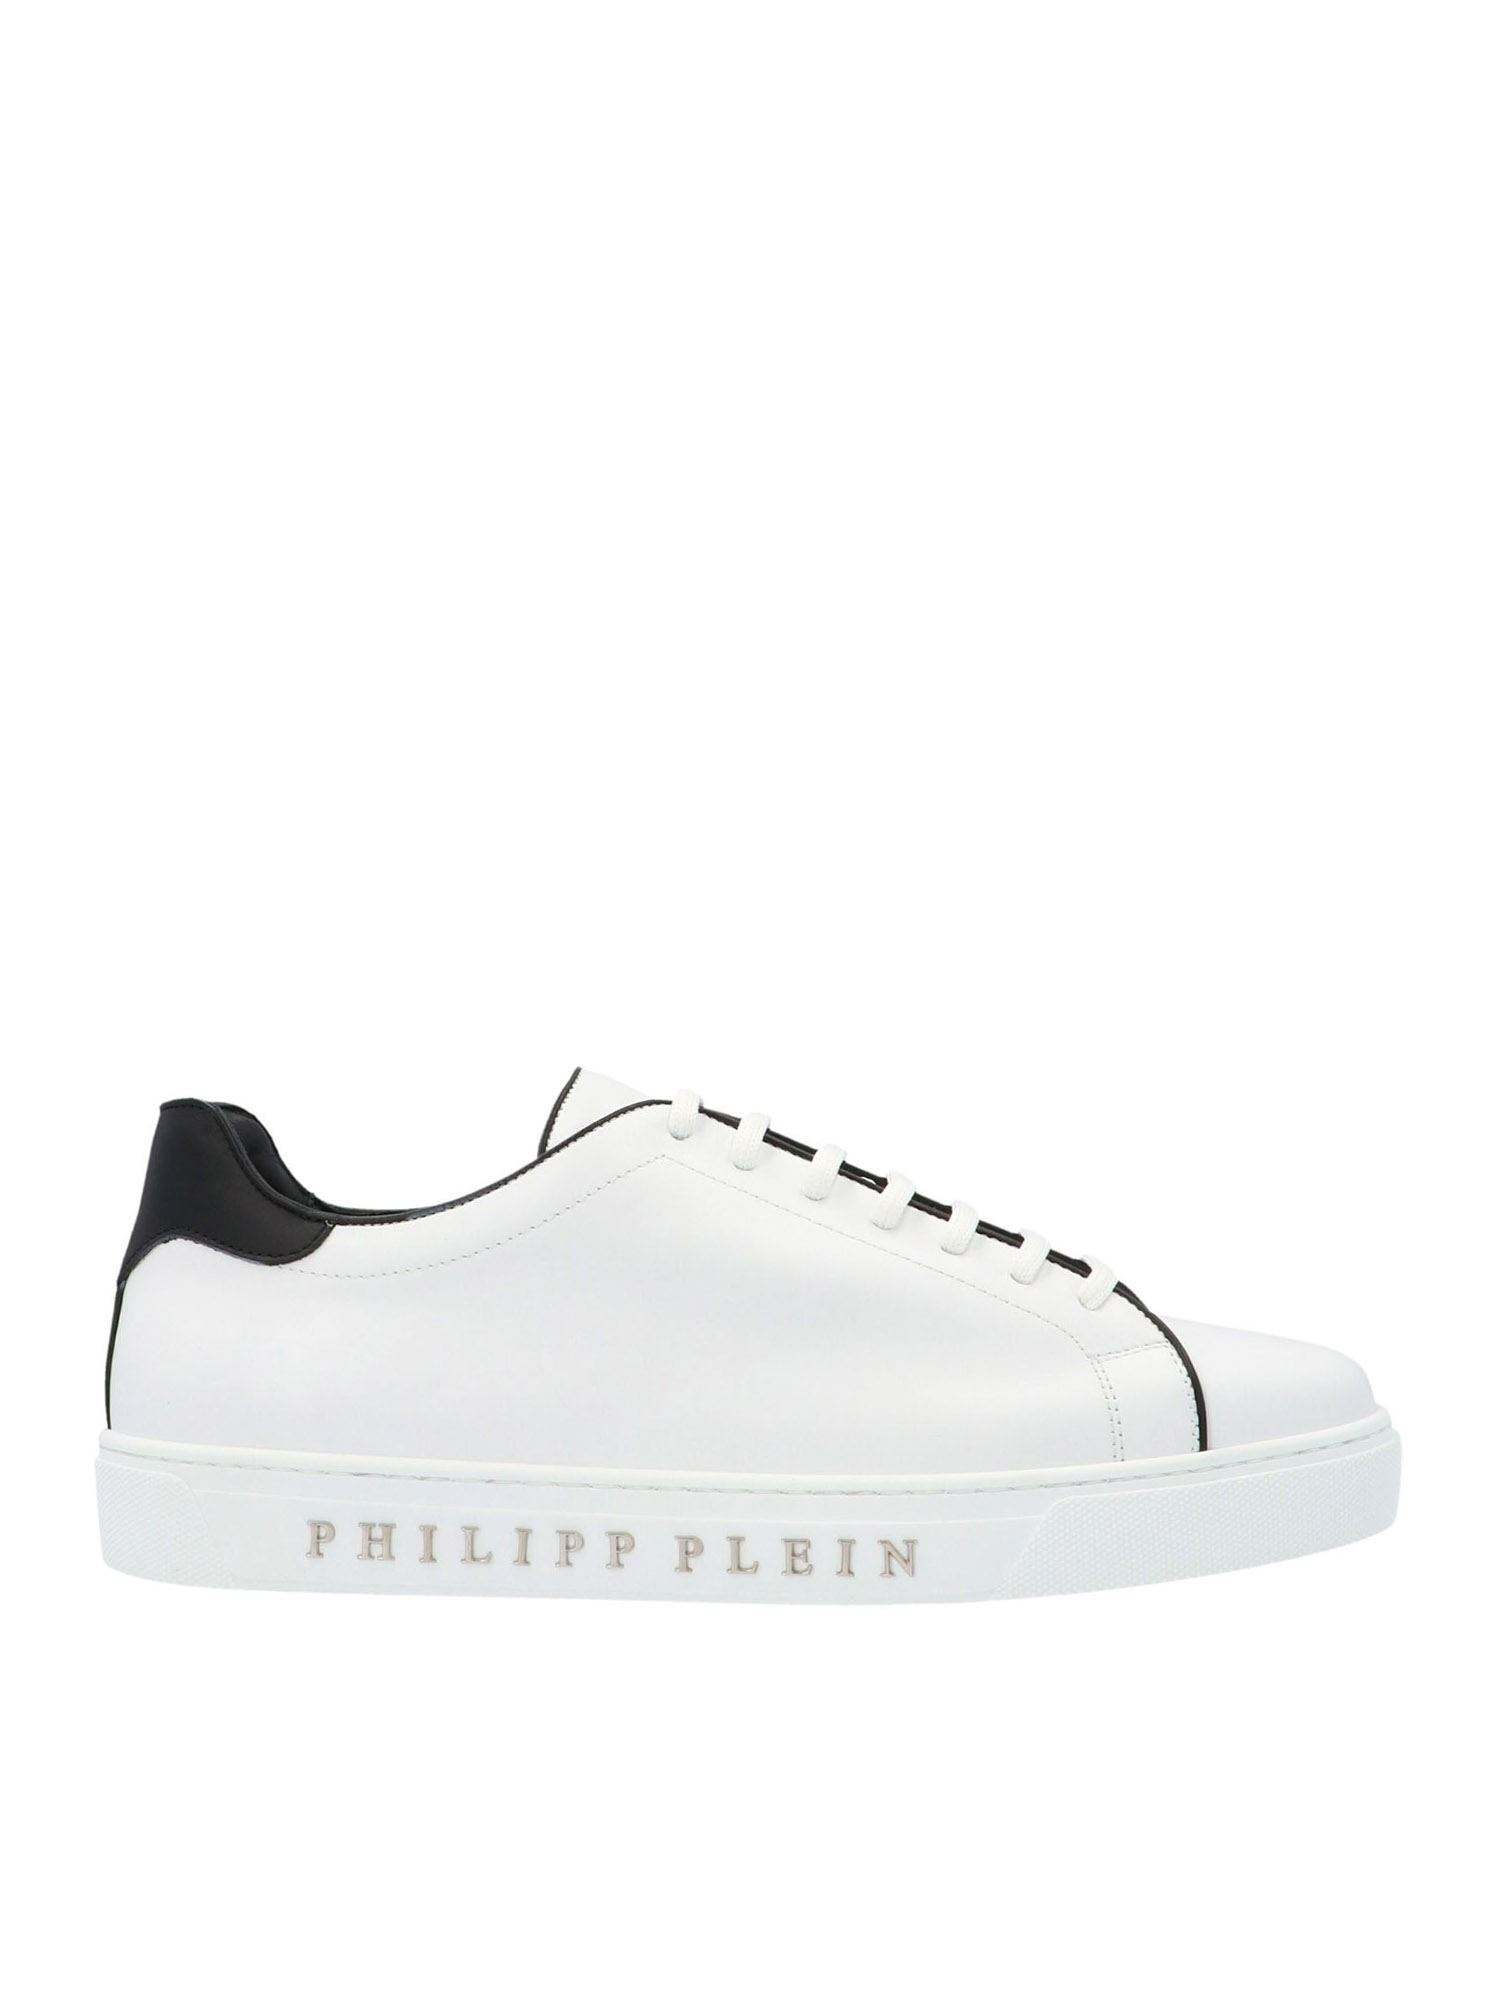 Philipp Plein INSTITUTIONAL SNEAKERS IN WHITE